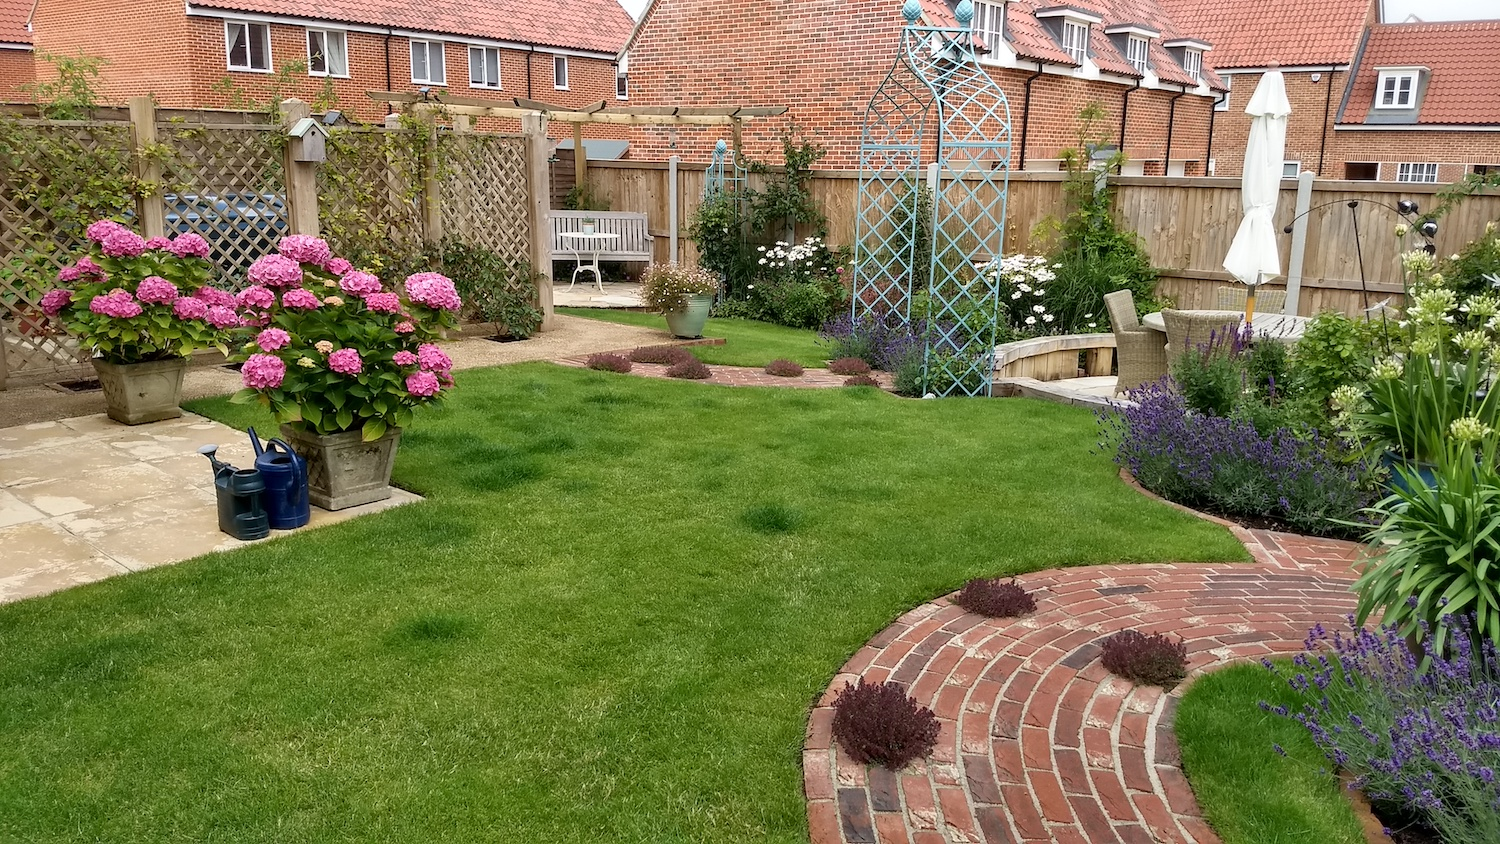 Karen No view of finished garden July 2017.jpg